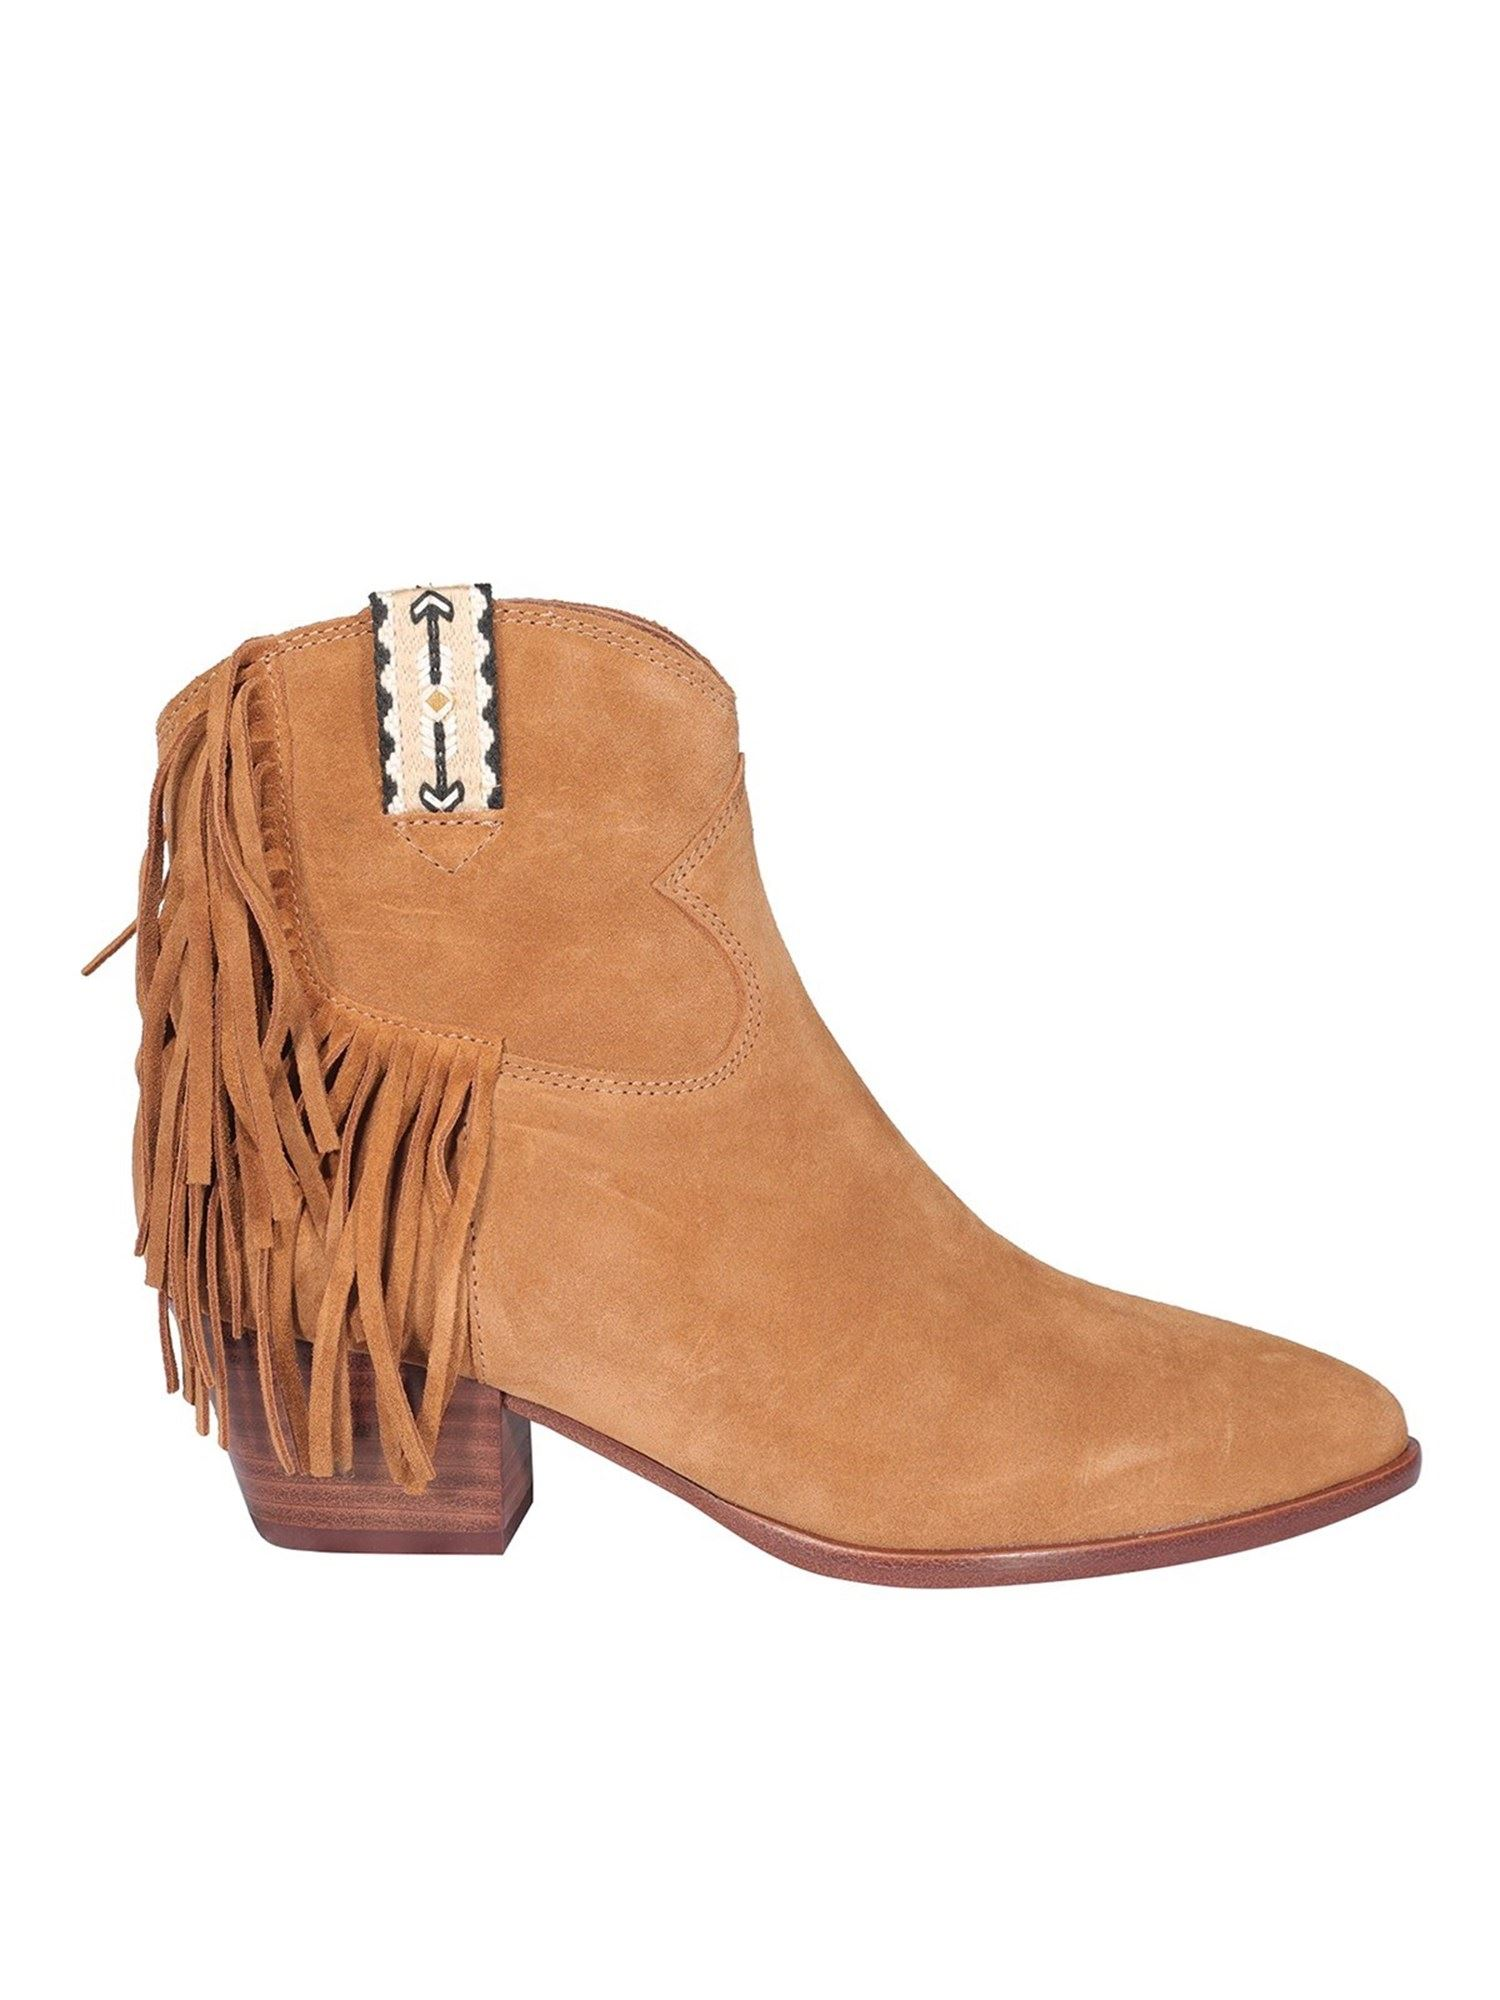 Ash HYSTERIA SUEDE ANKLE BOOTS IN BROWN